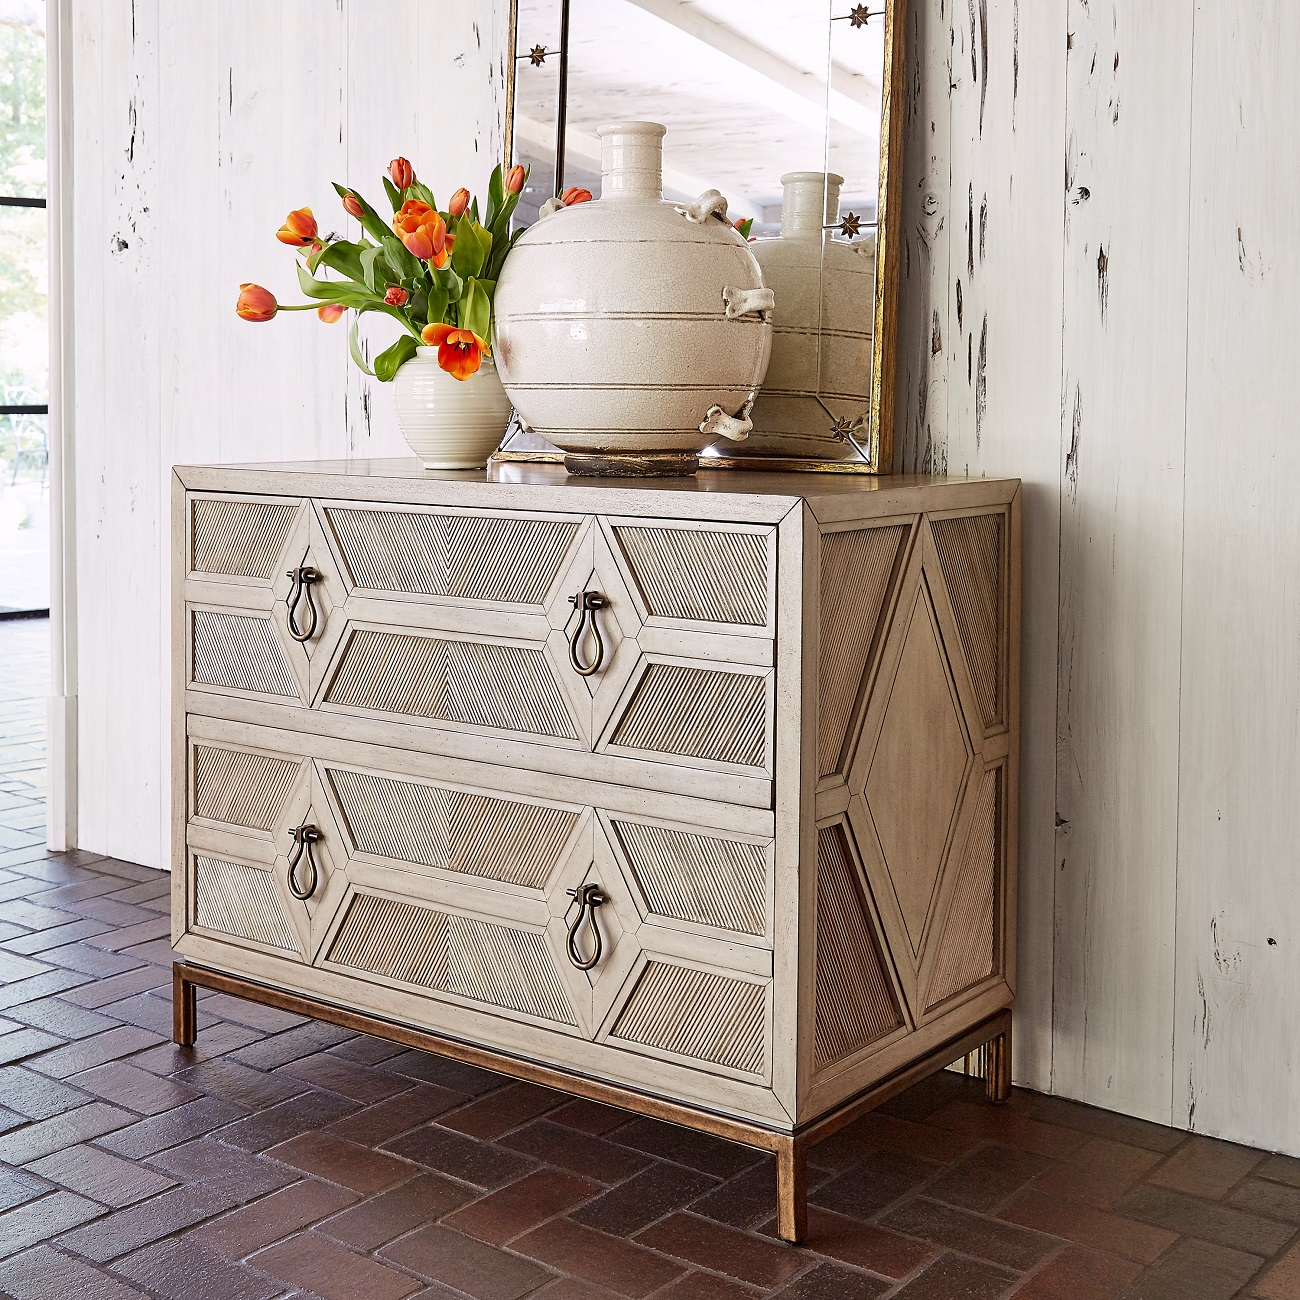 Furniture by ABD